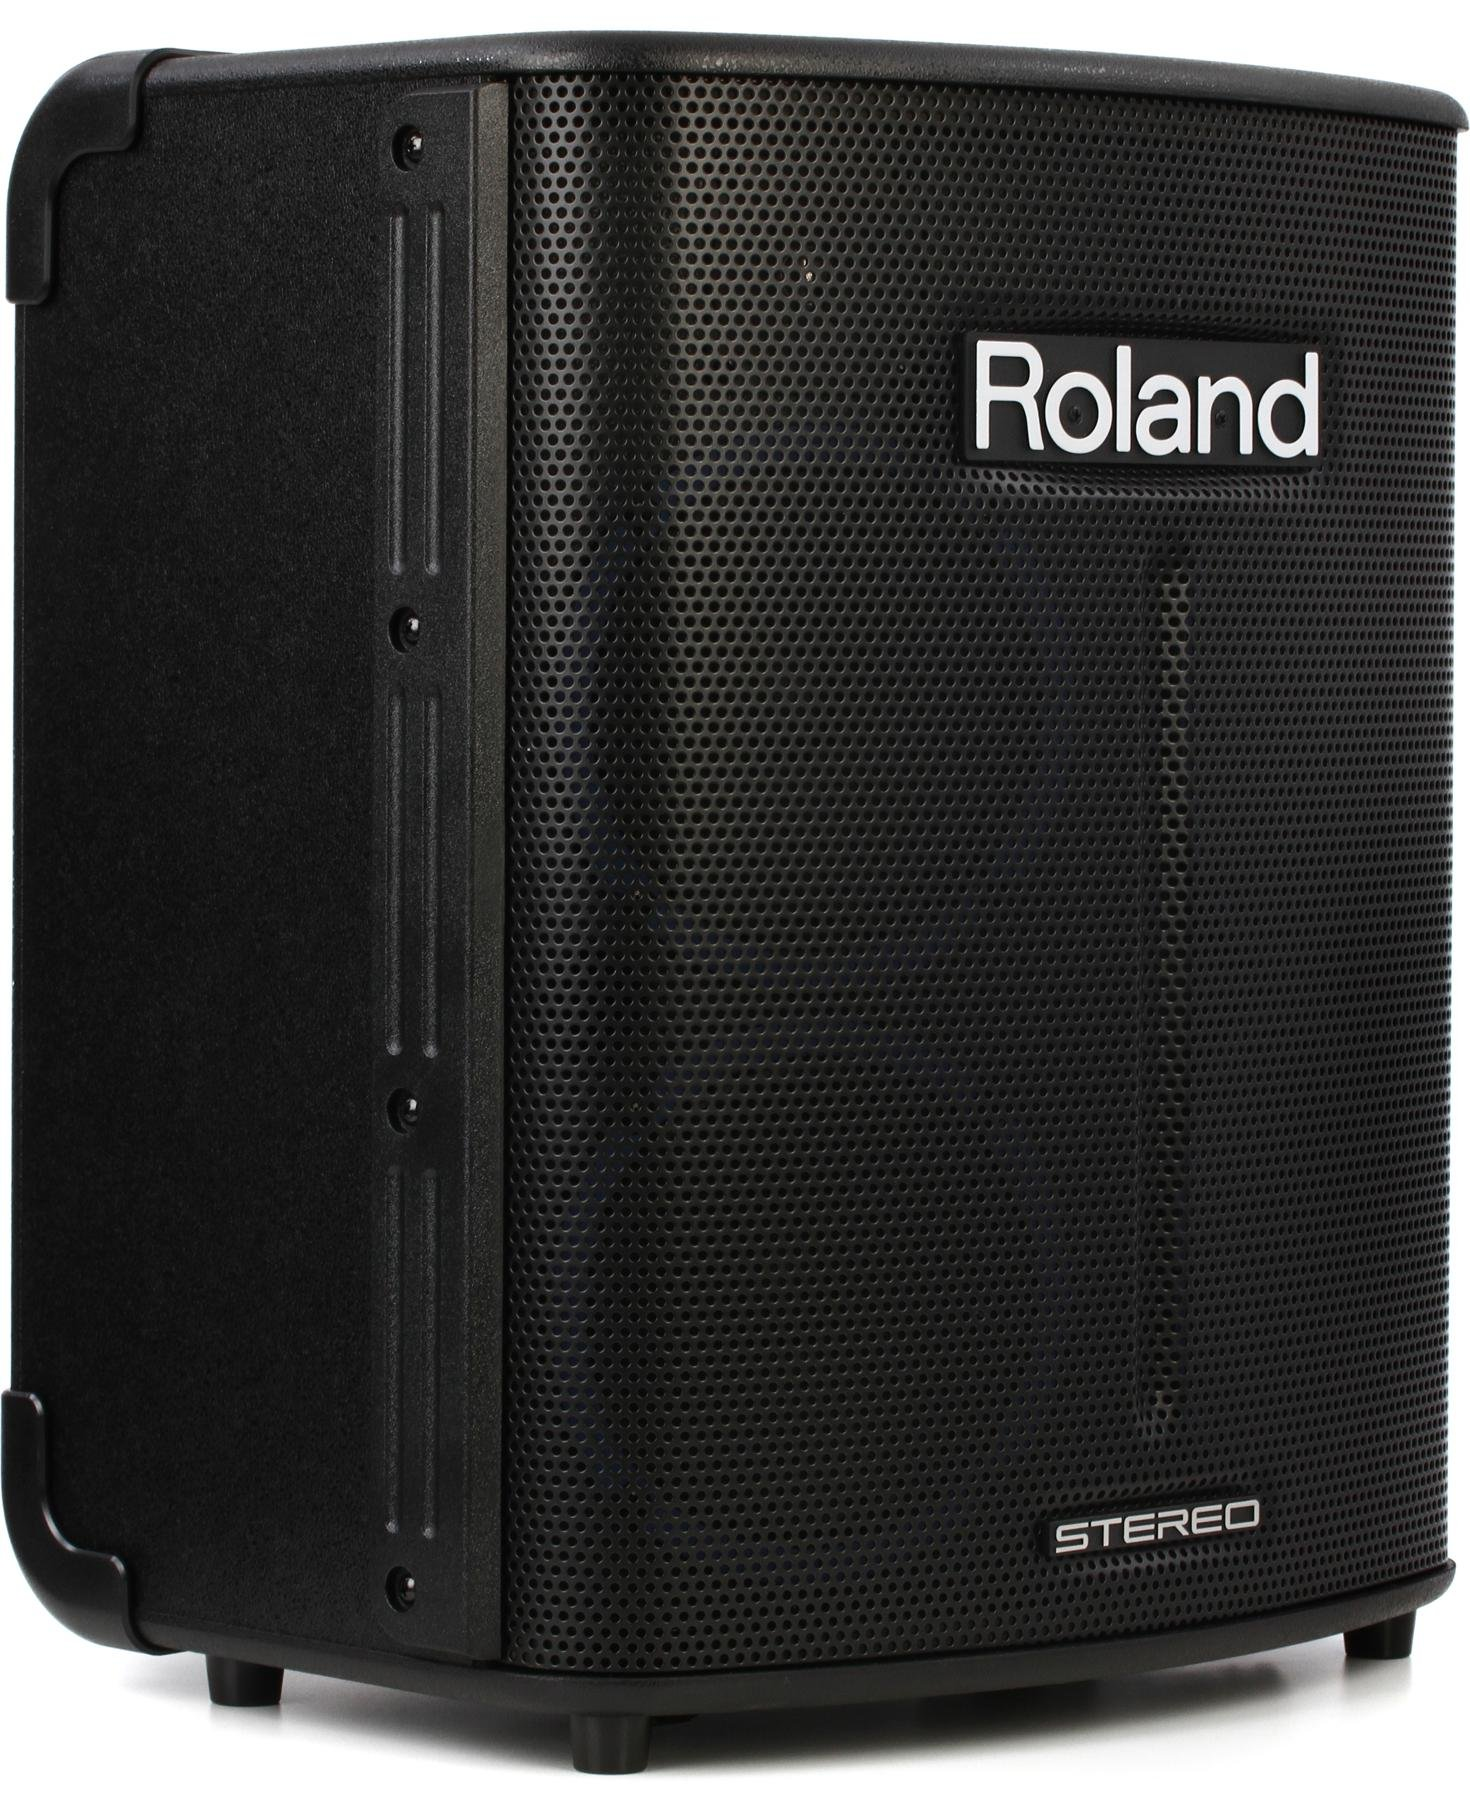 Roland Ba 330 Sweetwater Amplifier Mono Subwoofer Bass Speaker Amp W Cable Wiring Kit Ebay Image 1